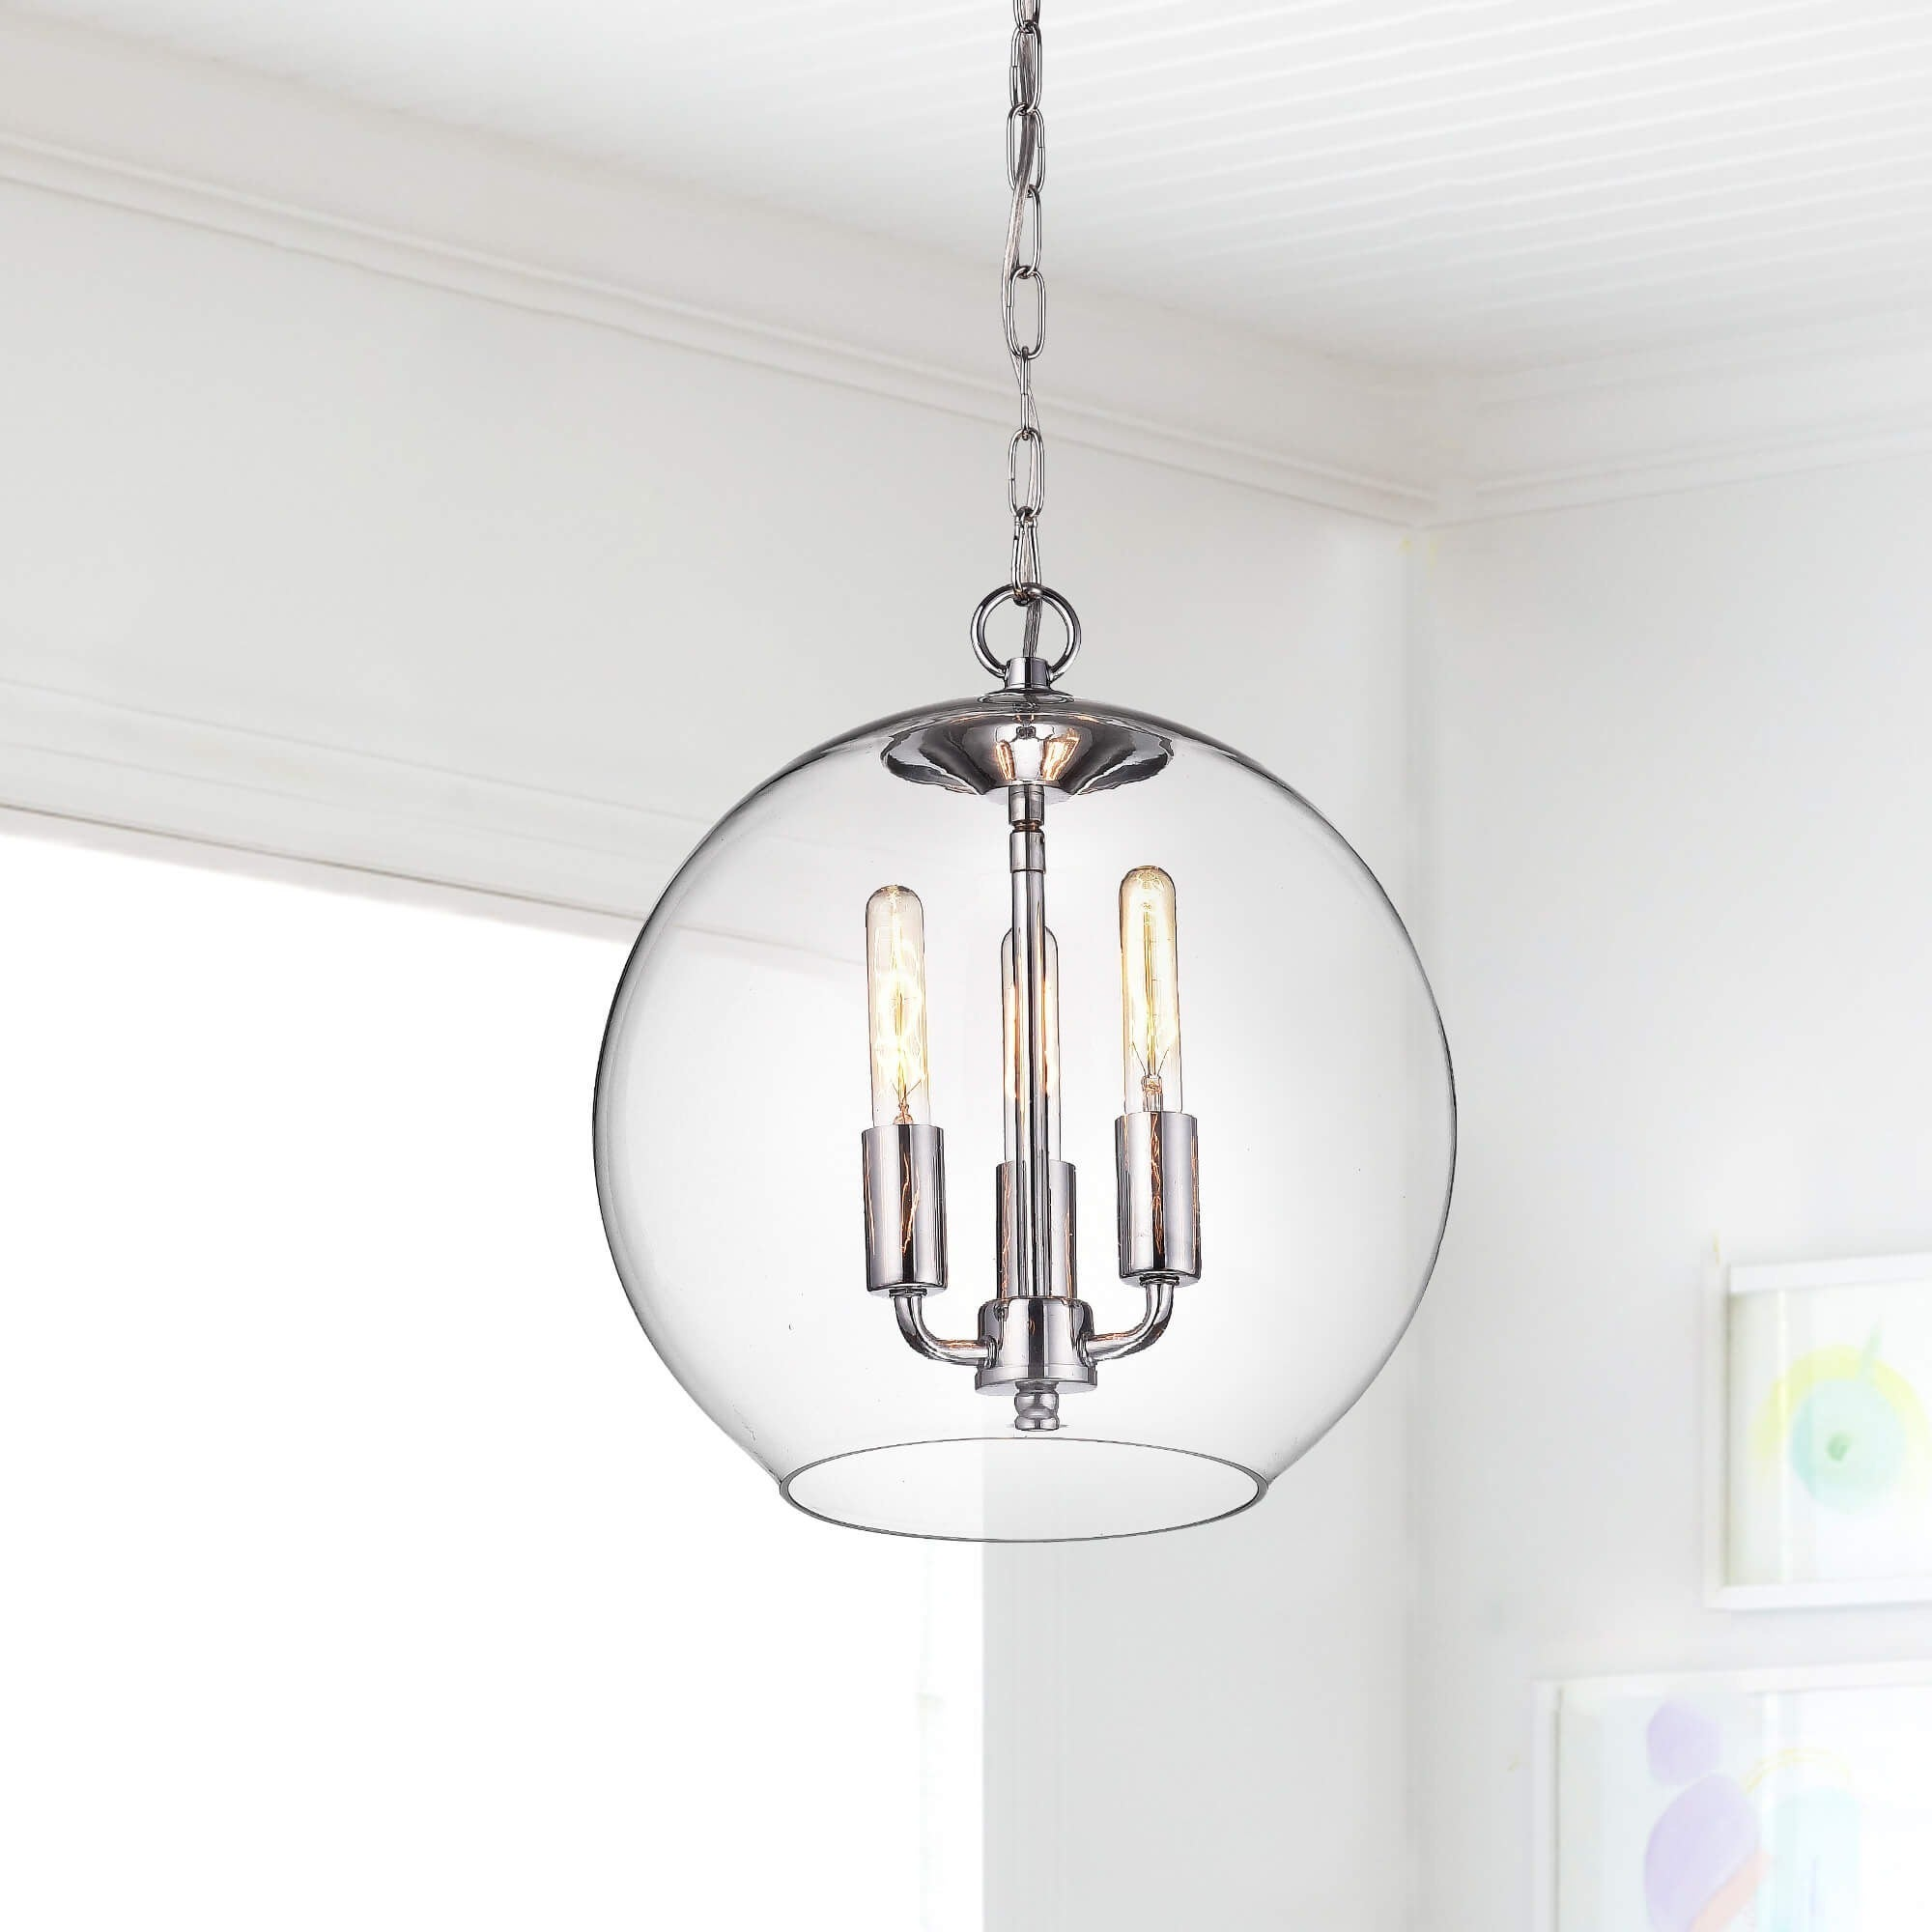 Luna Chrome Finish 3-Light Clear Glass Globe Iron Pendant Chandelier - Free  Shipping Today - Overstock.com - 23391872